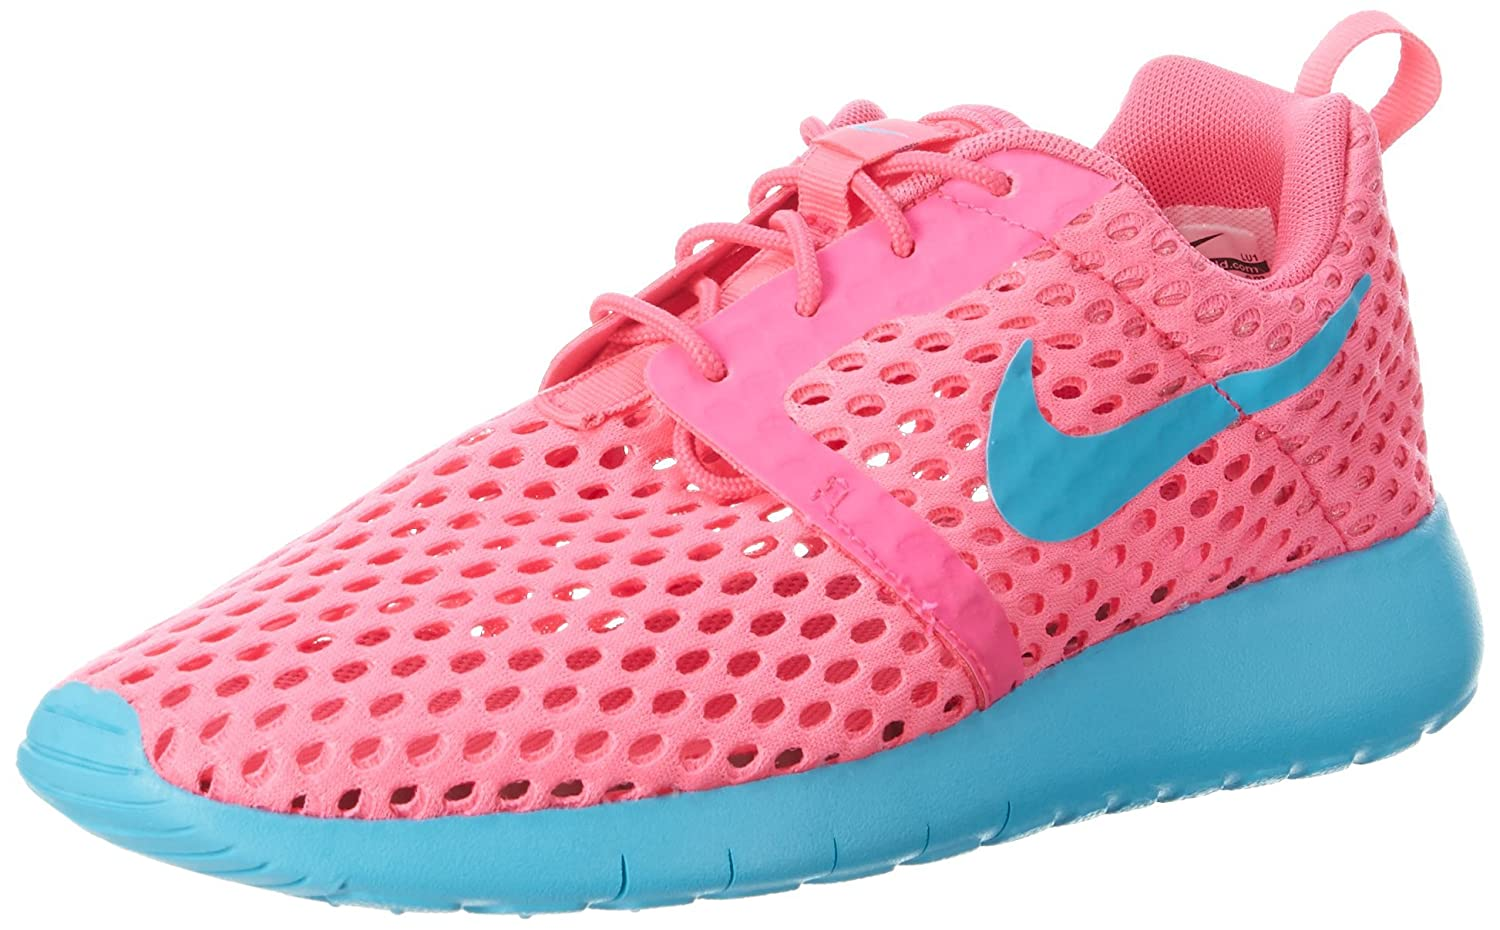 Nike Roshe One Flight Weight Athletic Gradeschool Girl's Shoes Size